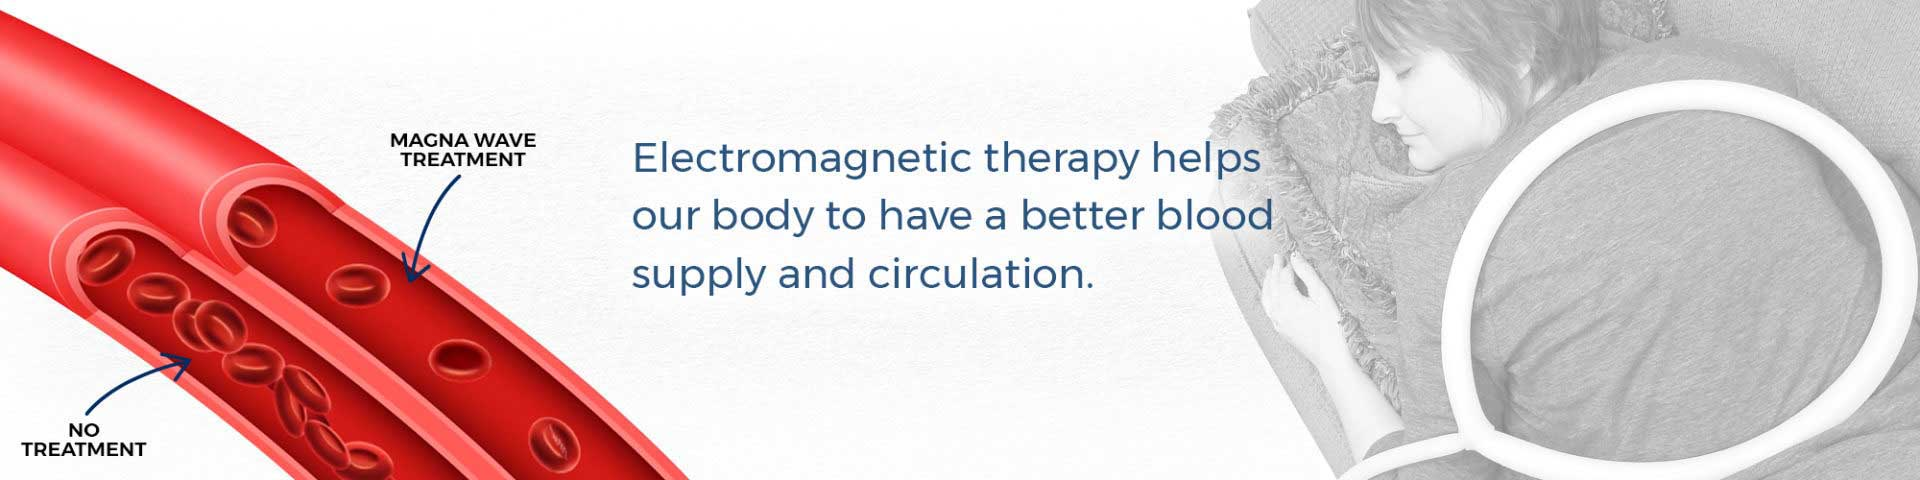 Electromagnetic therapy helps our body to have better blood supply and circulation.